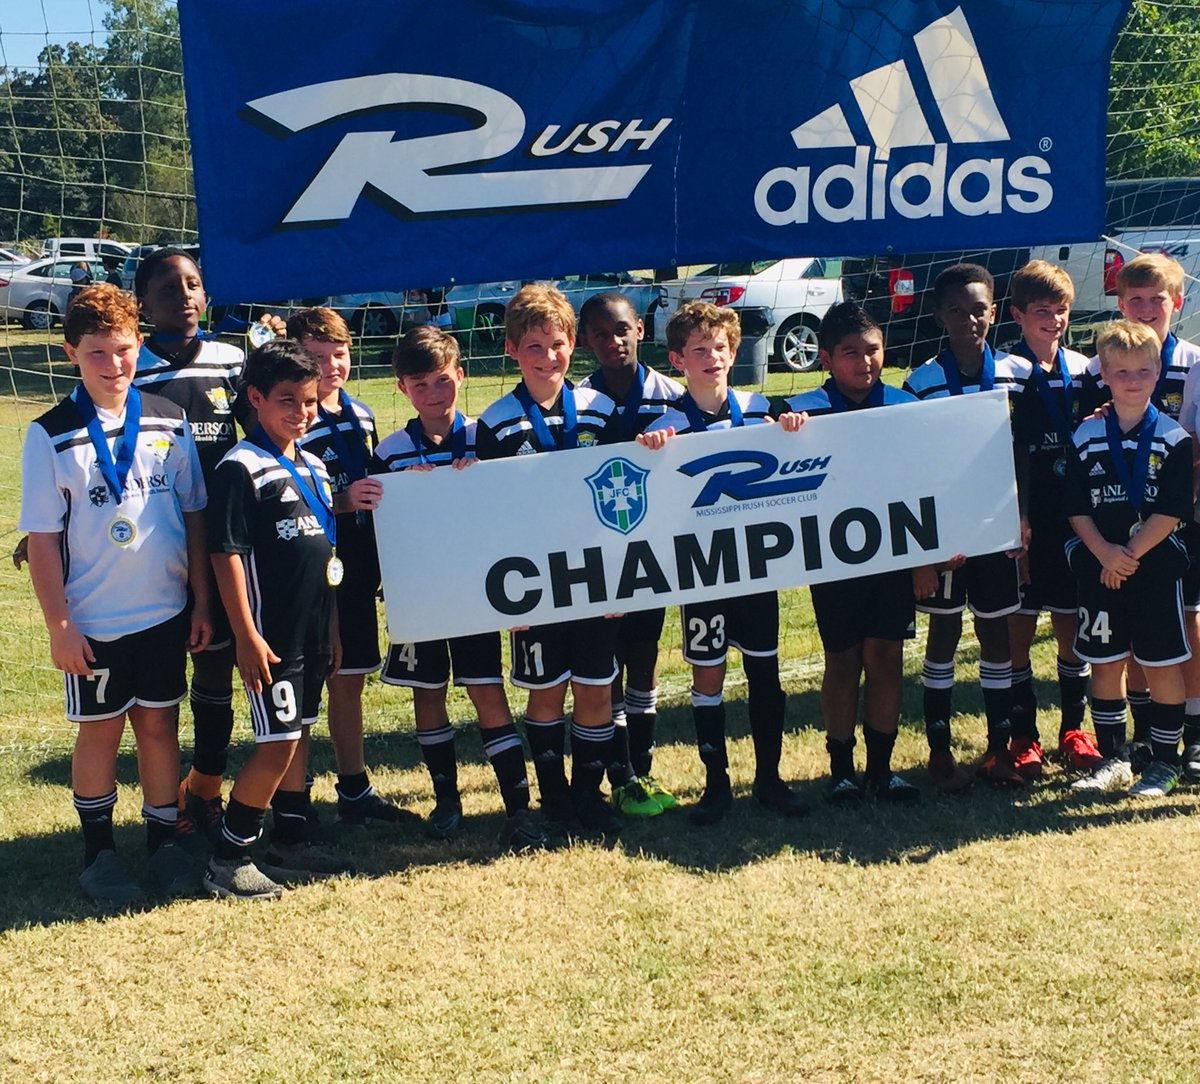 07 boys are champions of Crossroads with a 2-1 win over Rush Jackson, congratulations to coach Leon & team! #champions #GoAFC